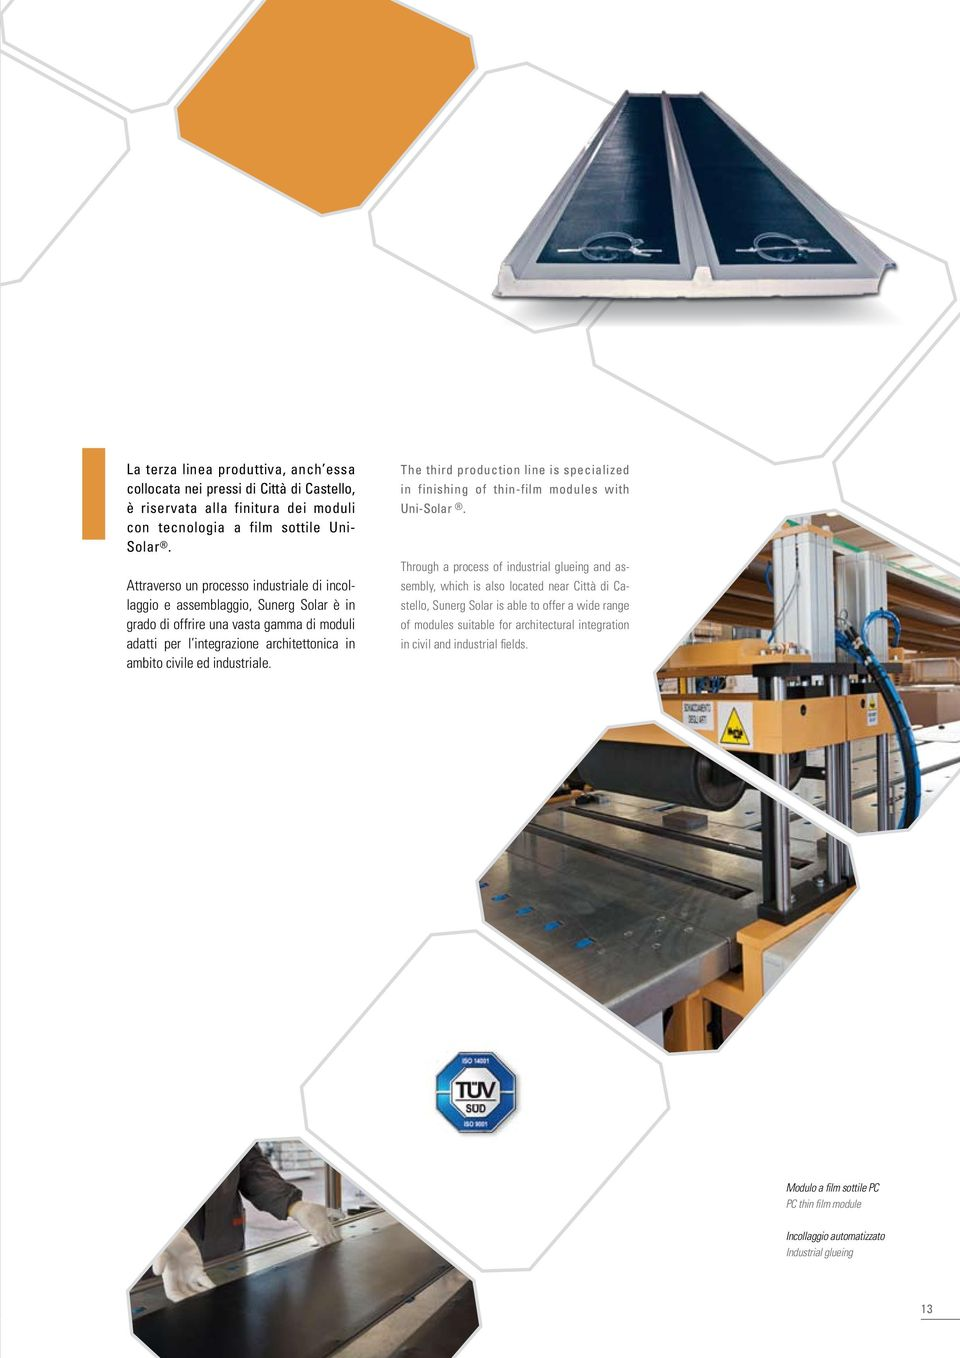 industriale. The third production line is specialized in finishing of thin-film modules with Uni-Solar.